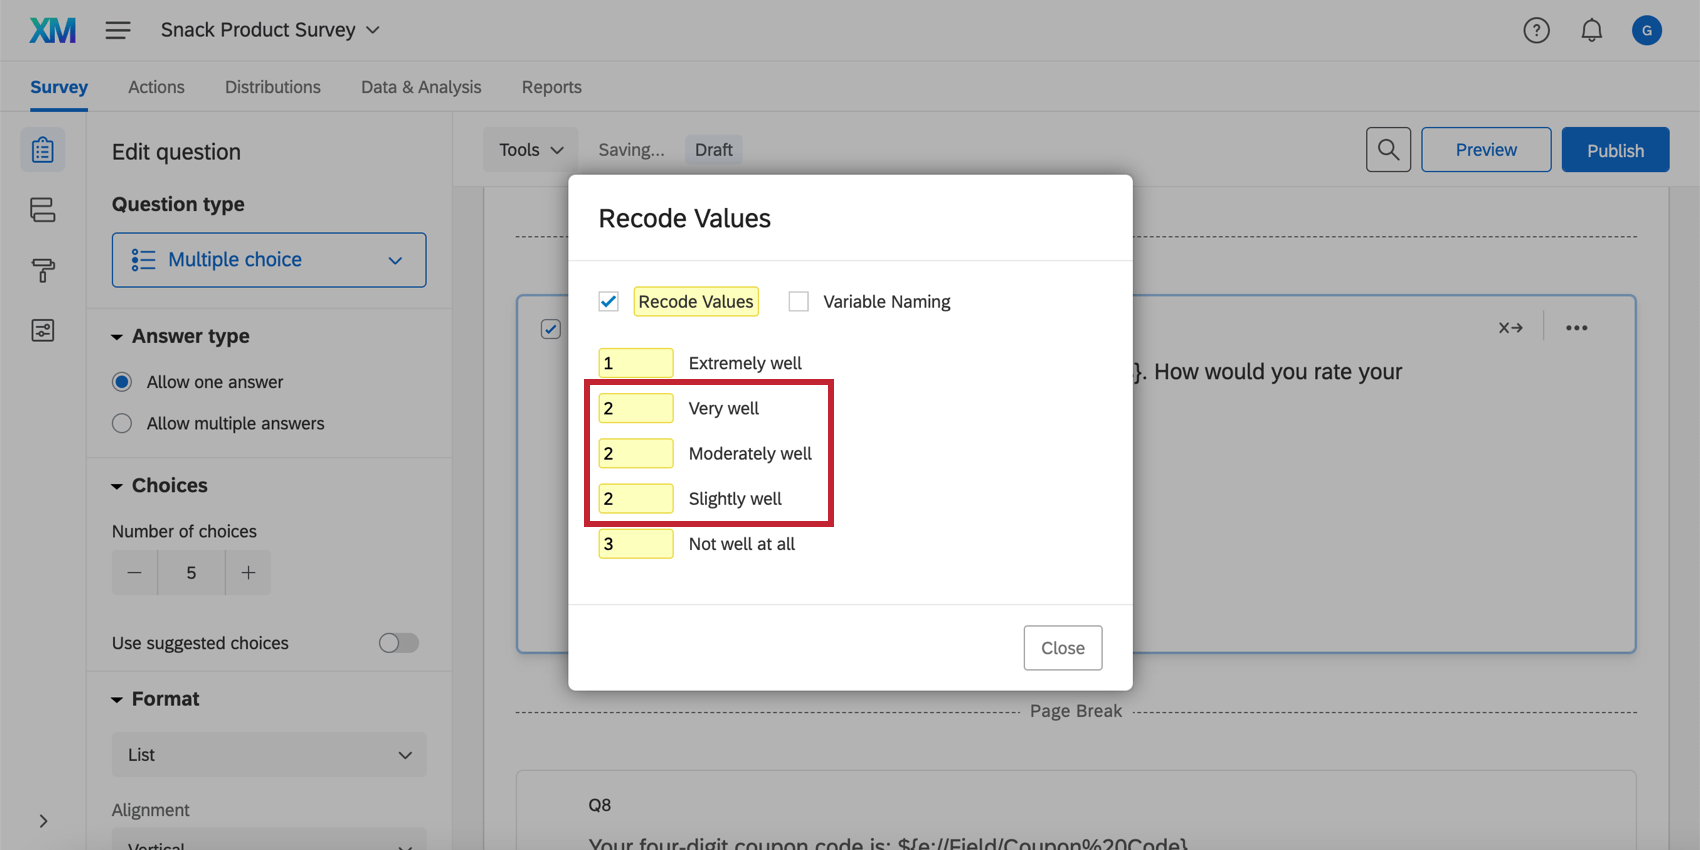 Recoded values in the recode values window